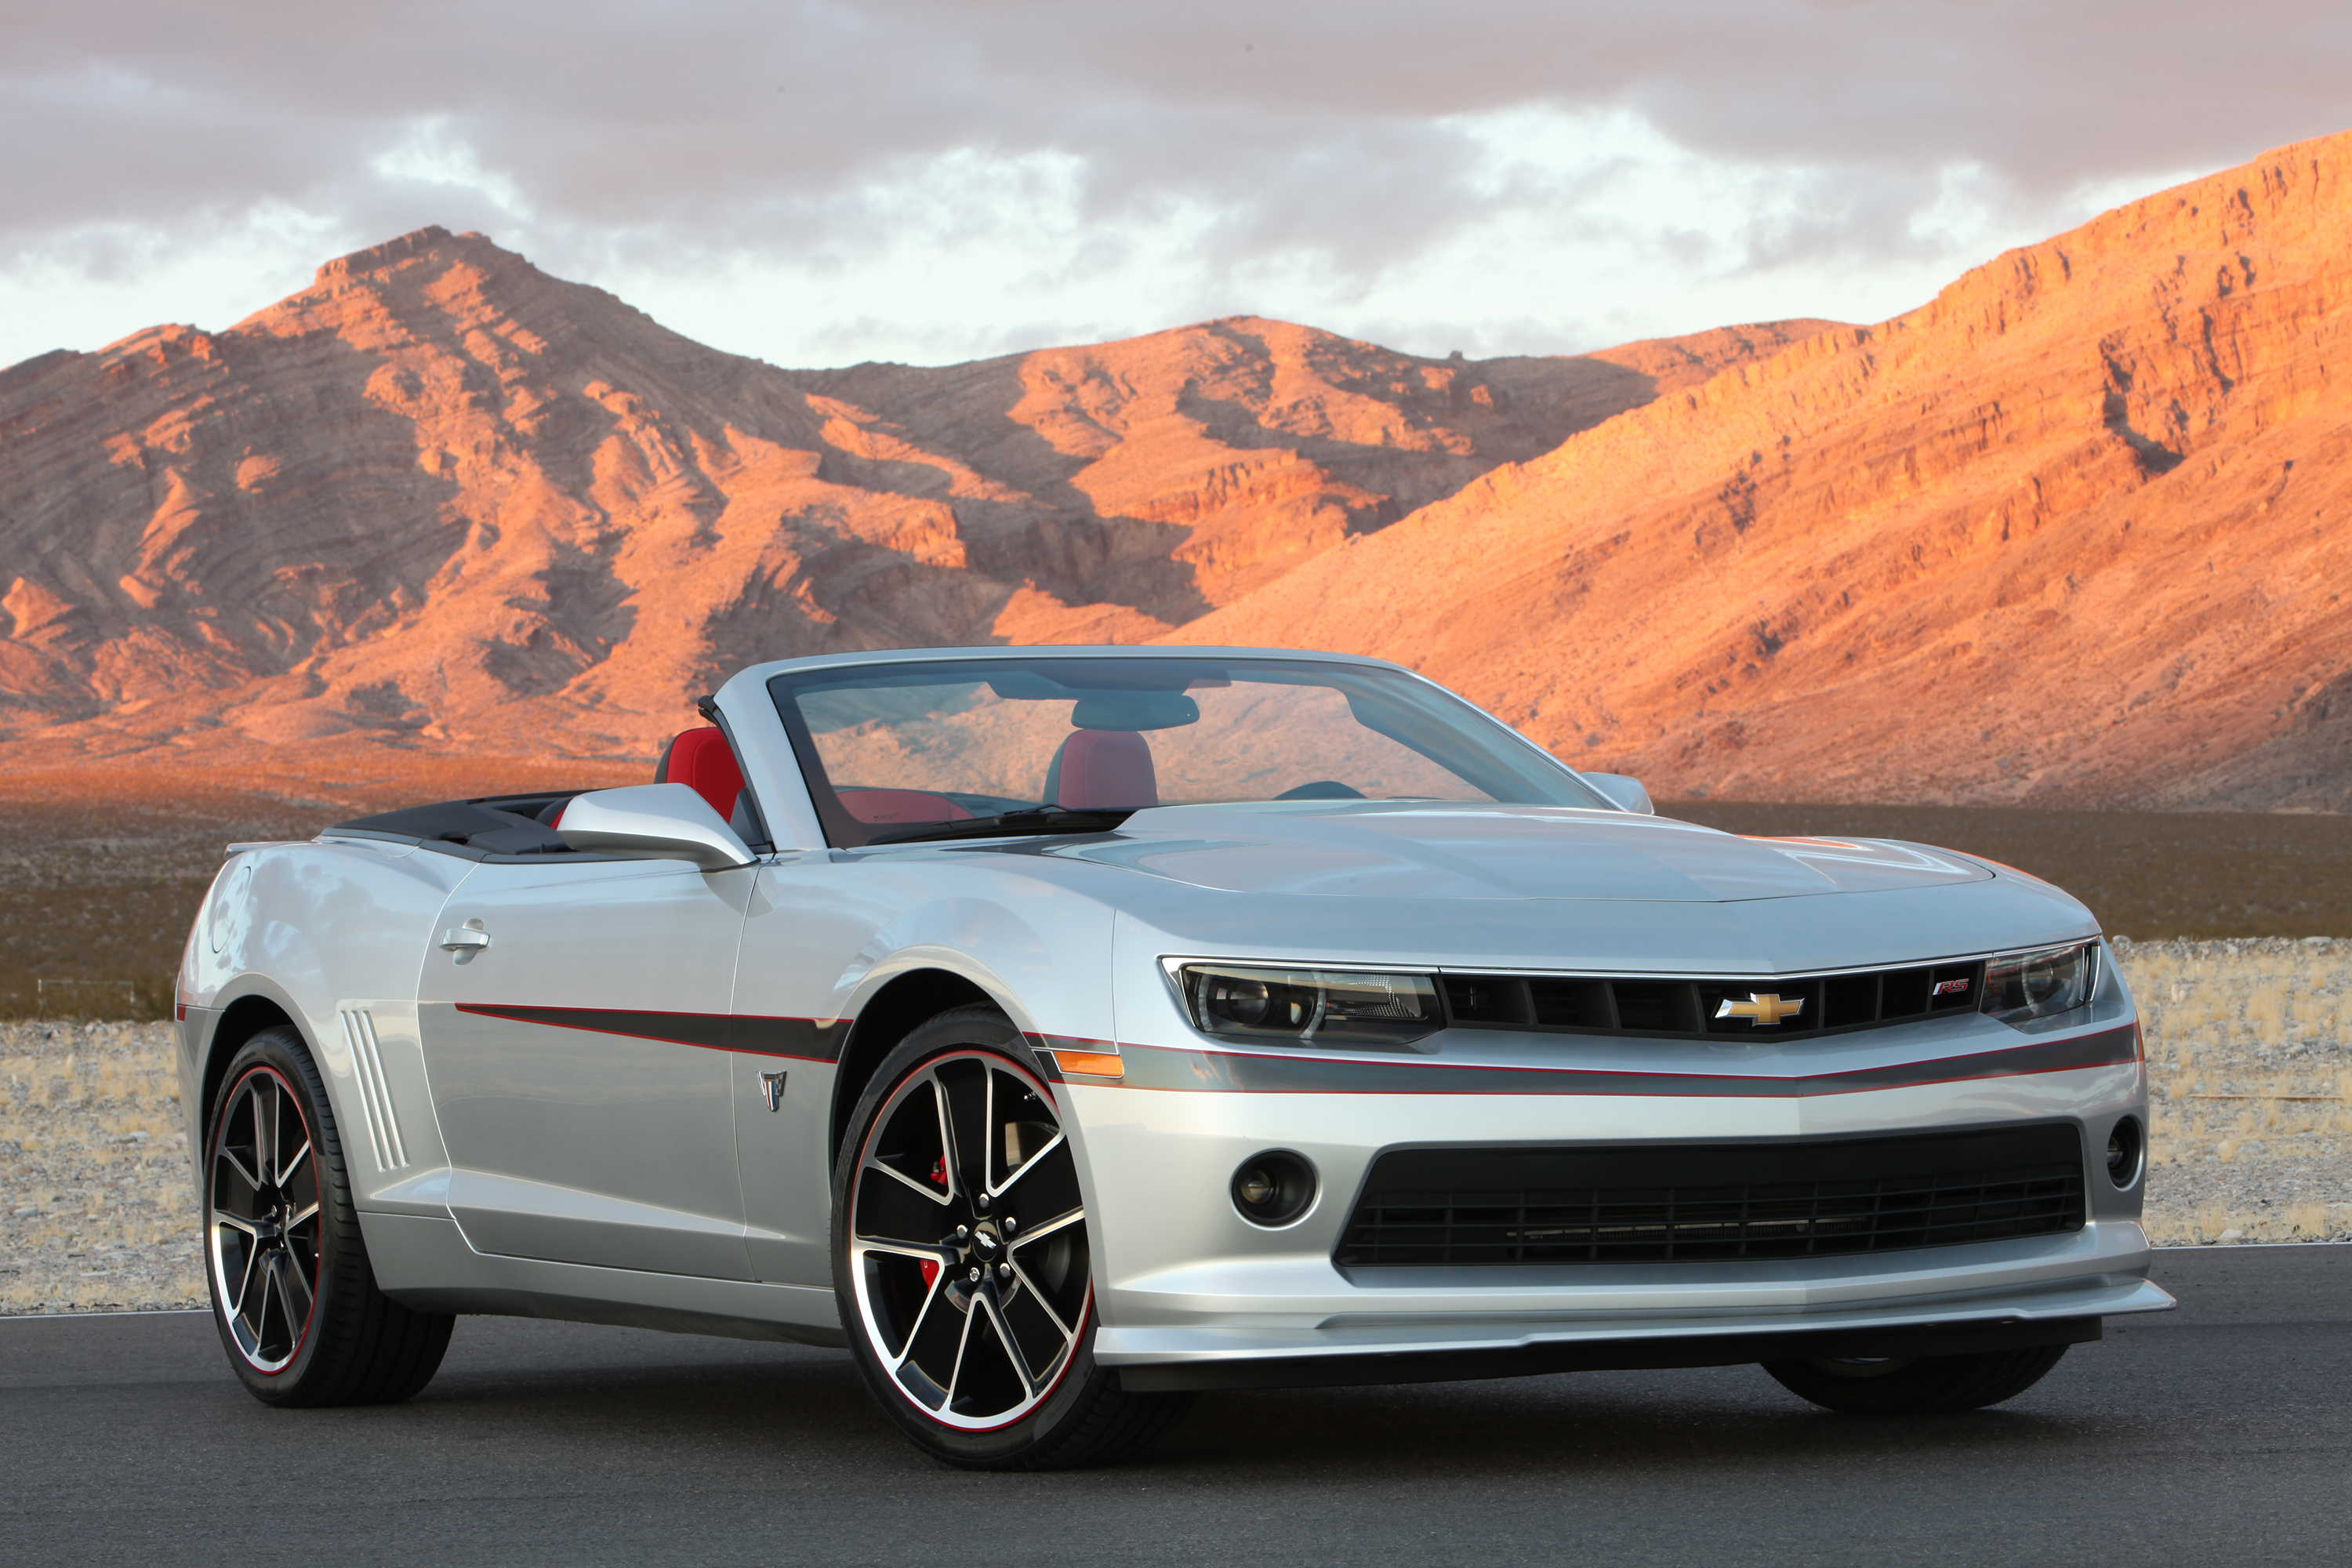 2015 Chevrolet Camaro Commemorative Edition Bows at SEMA ...